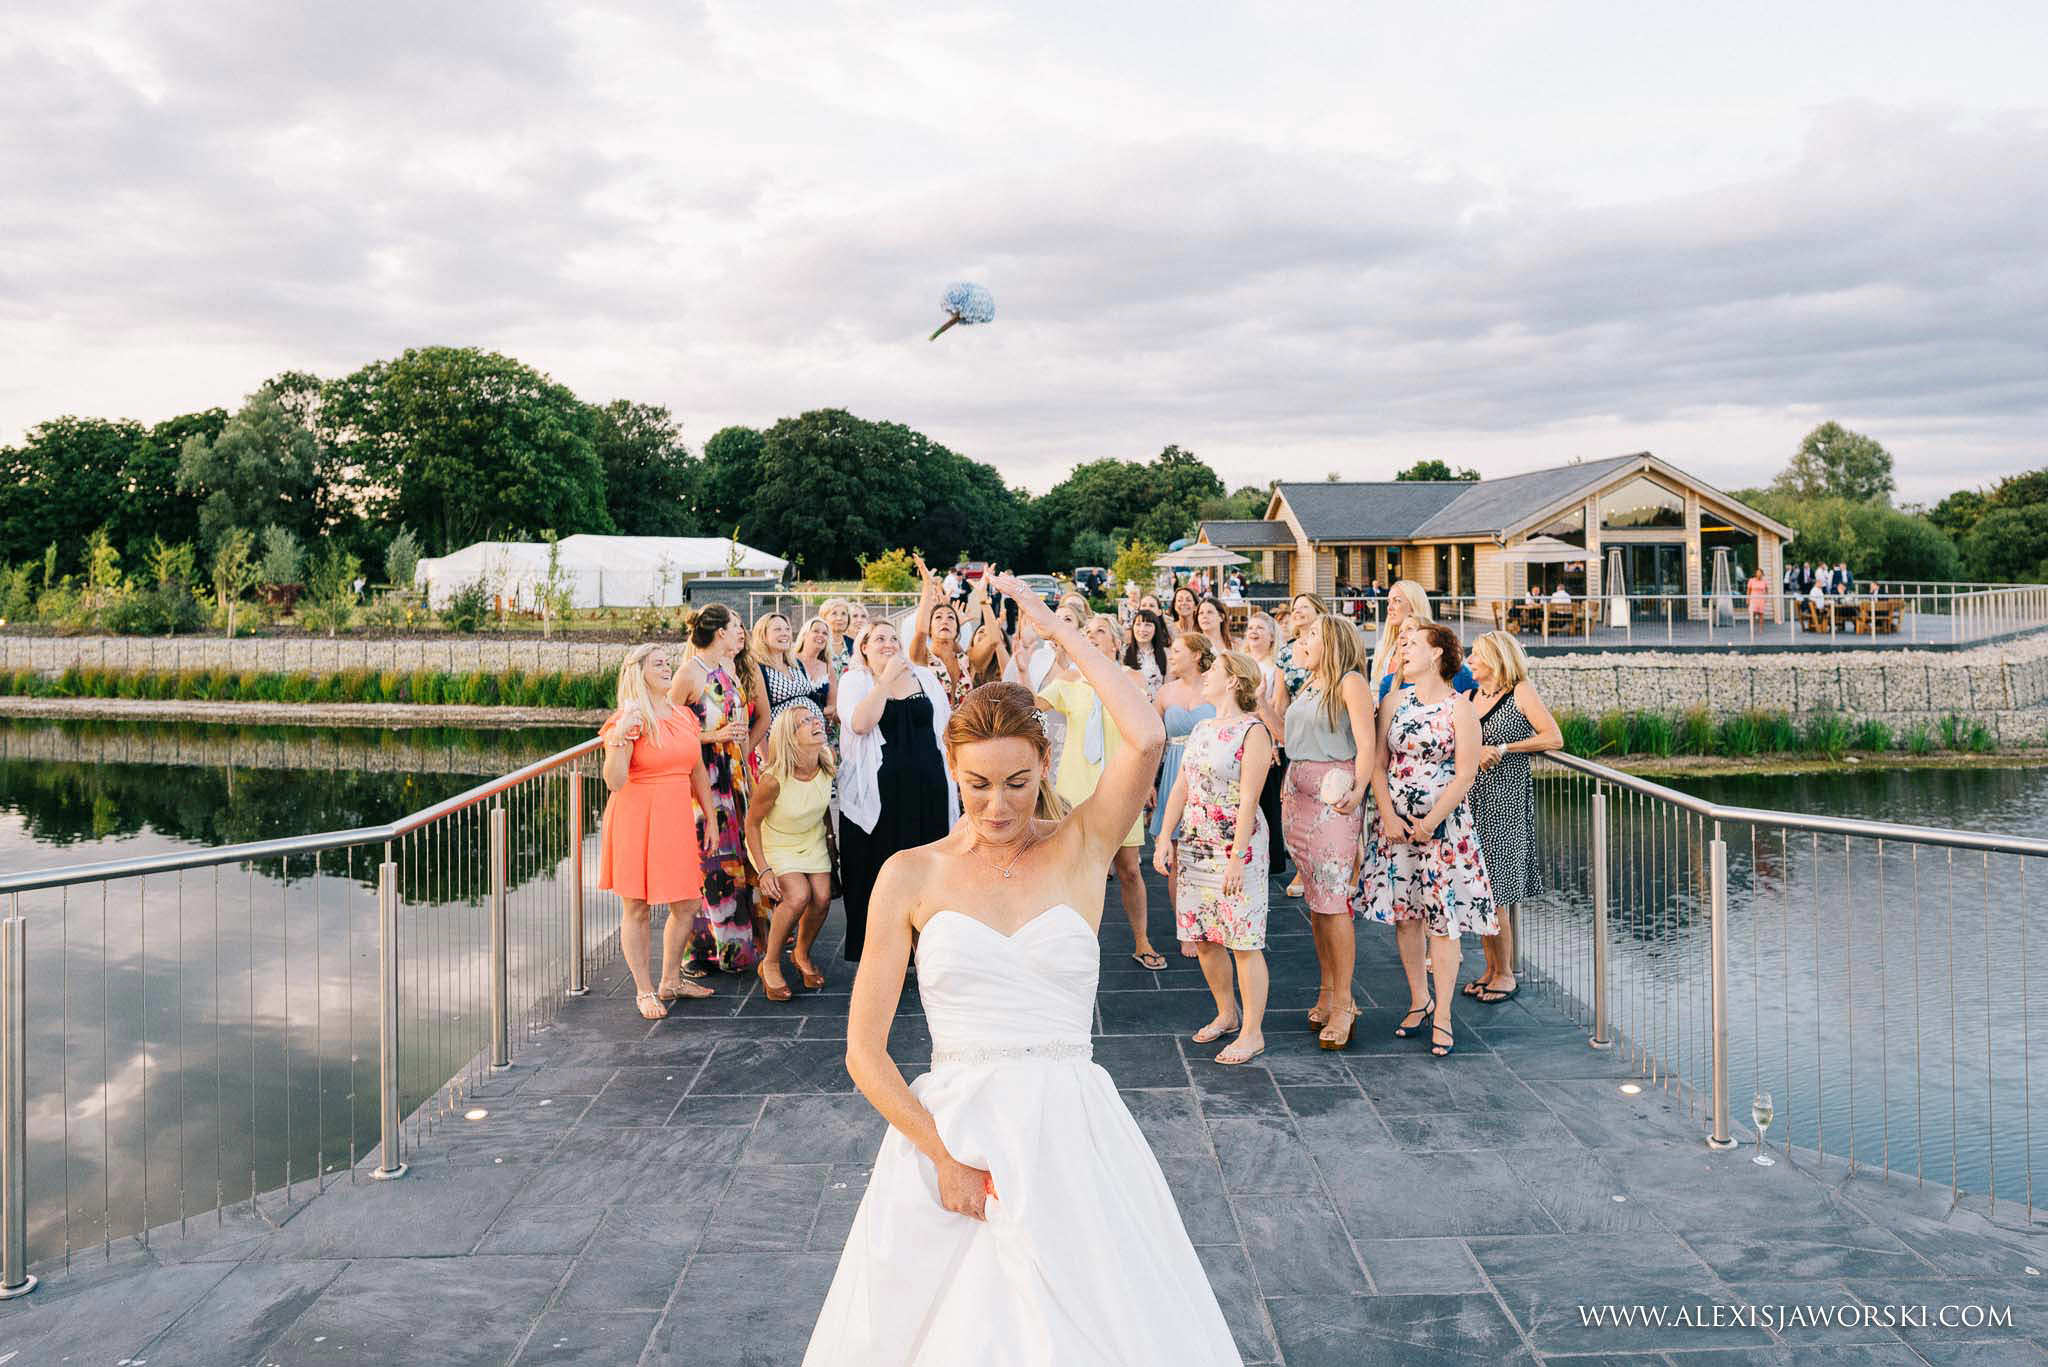 bouquet throw by bride